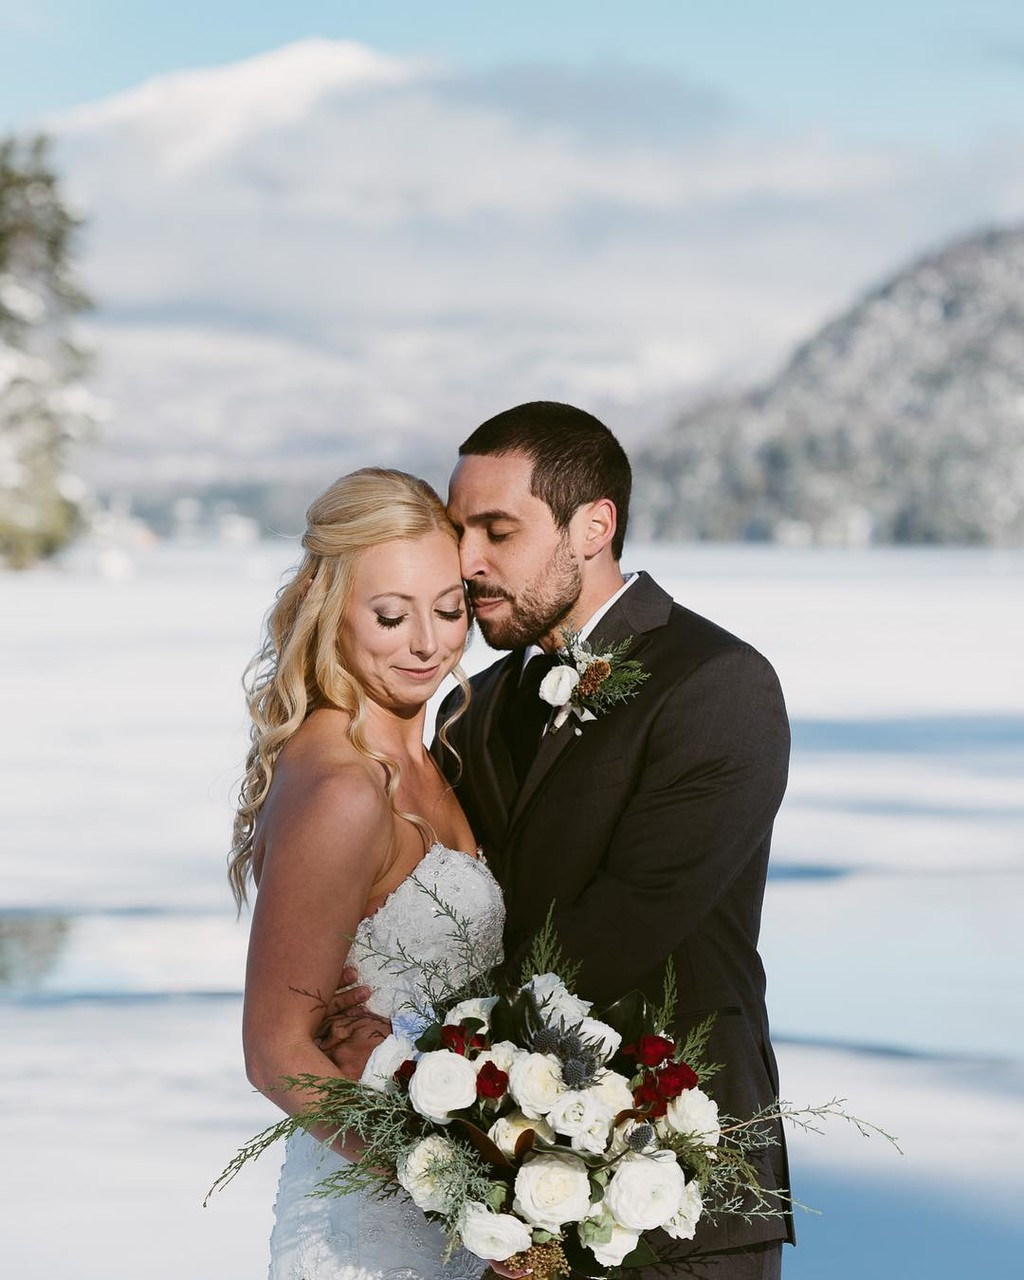 Lake Placid Winter Wedding Inspo •